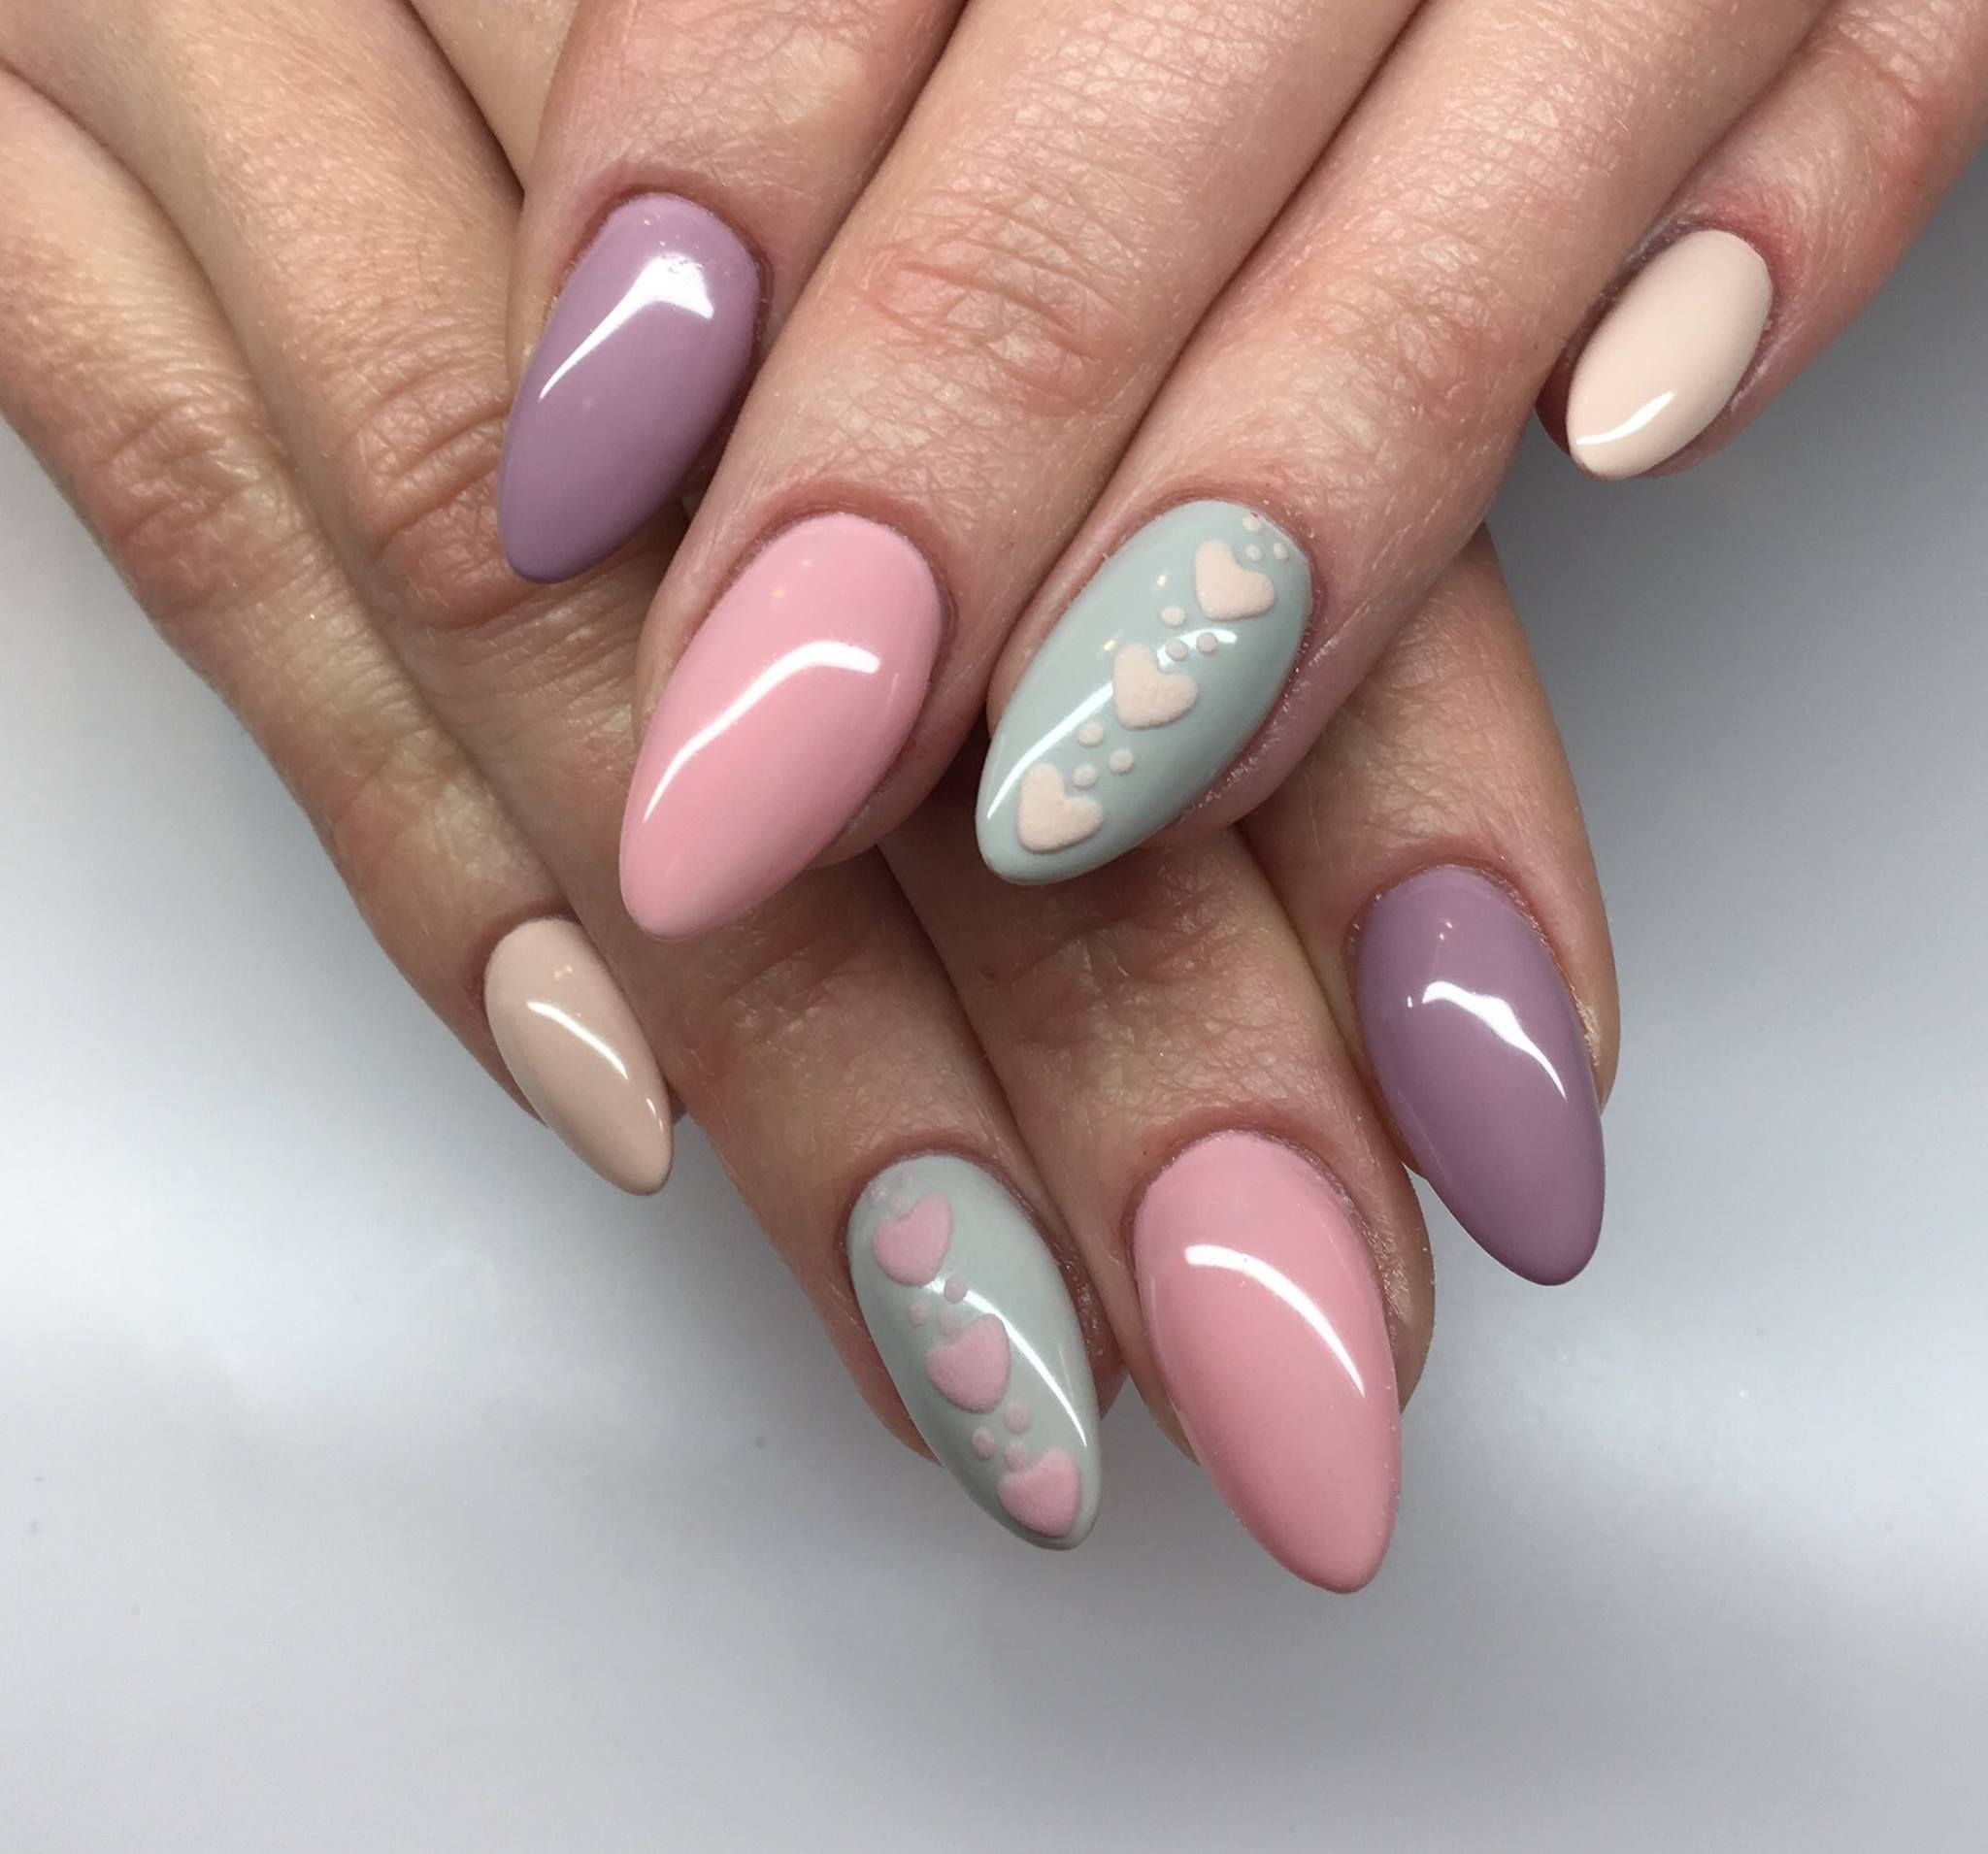 Pastel nails | nails | Pinterest | Pastel nails, Pastels and Manicure